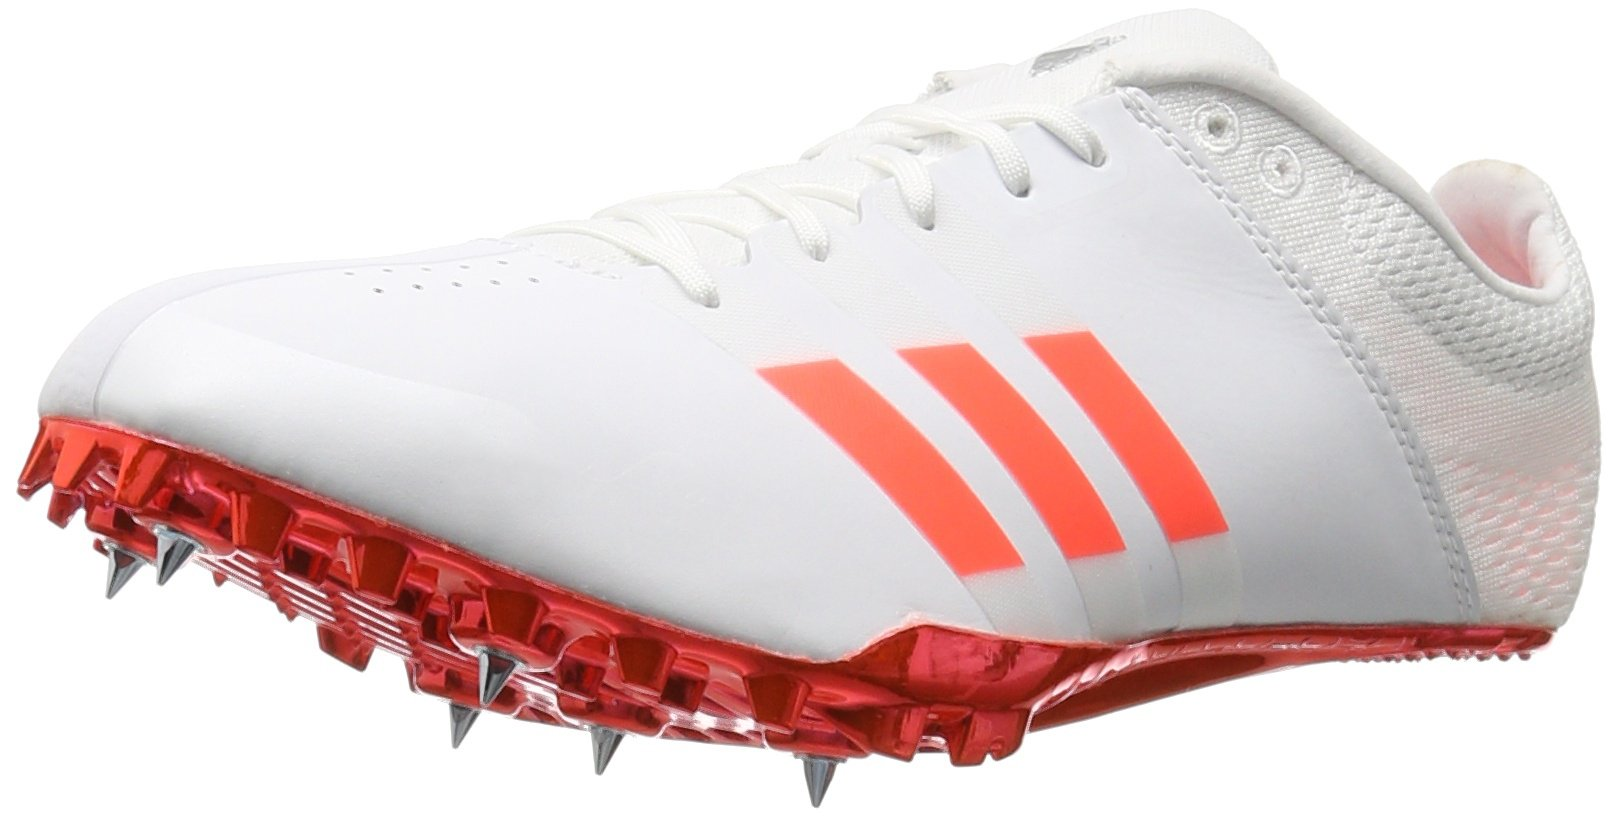 adidas Adizero Finesse Track Shoe, White/Solar Red/Tech Silver Metallic, 9.5 M US